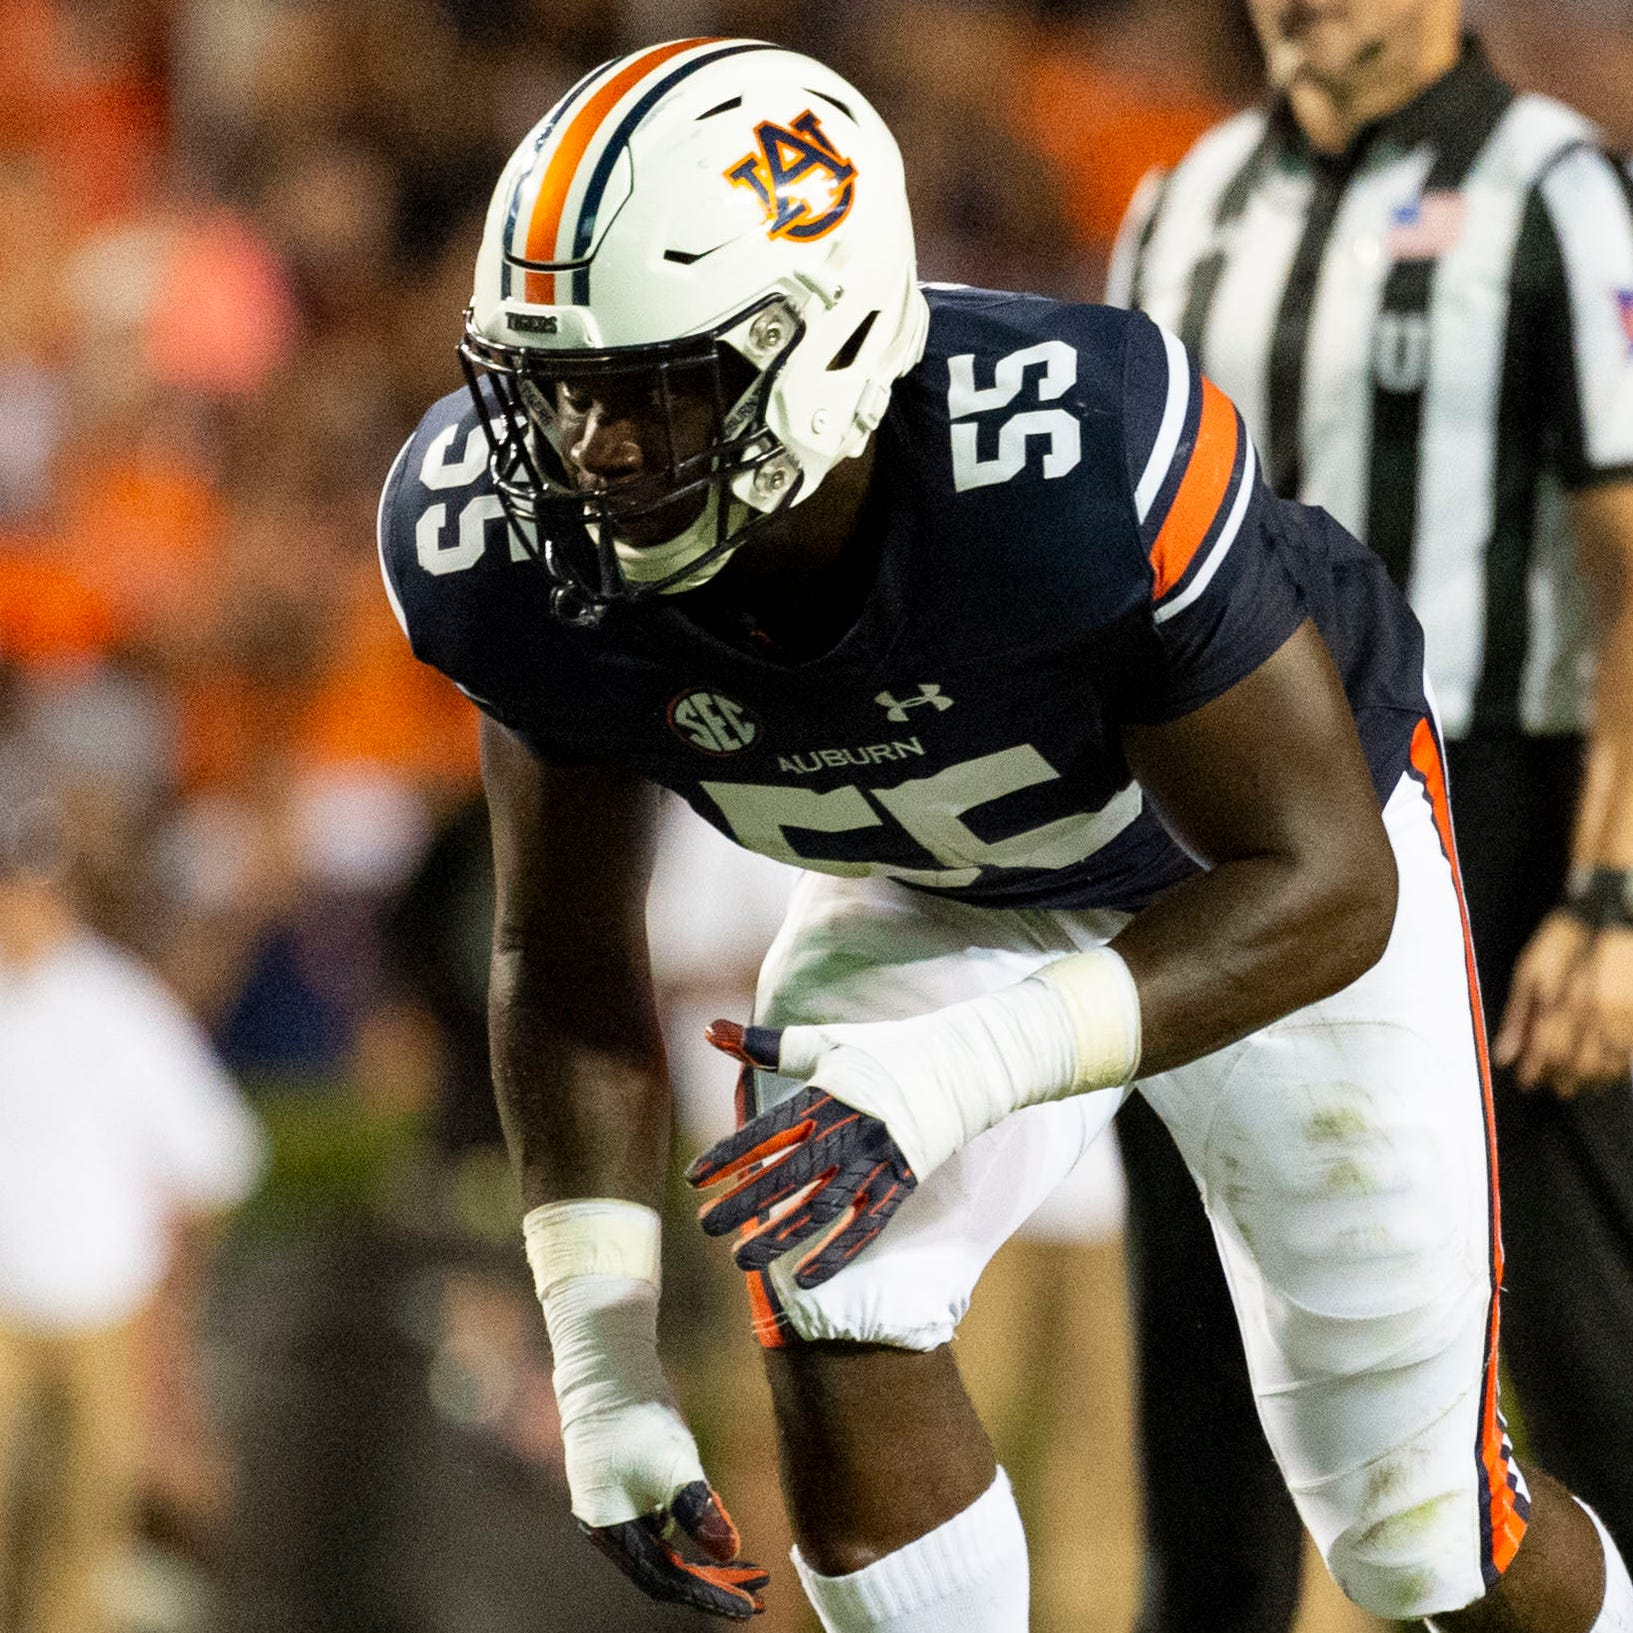 MAILBAG: Should Auburn move T.D. Moultry from defensive line back to linebacker?